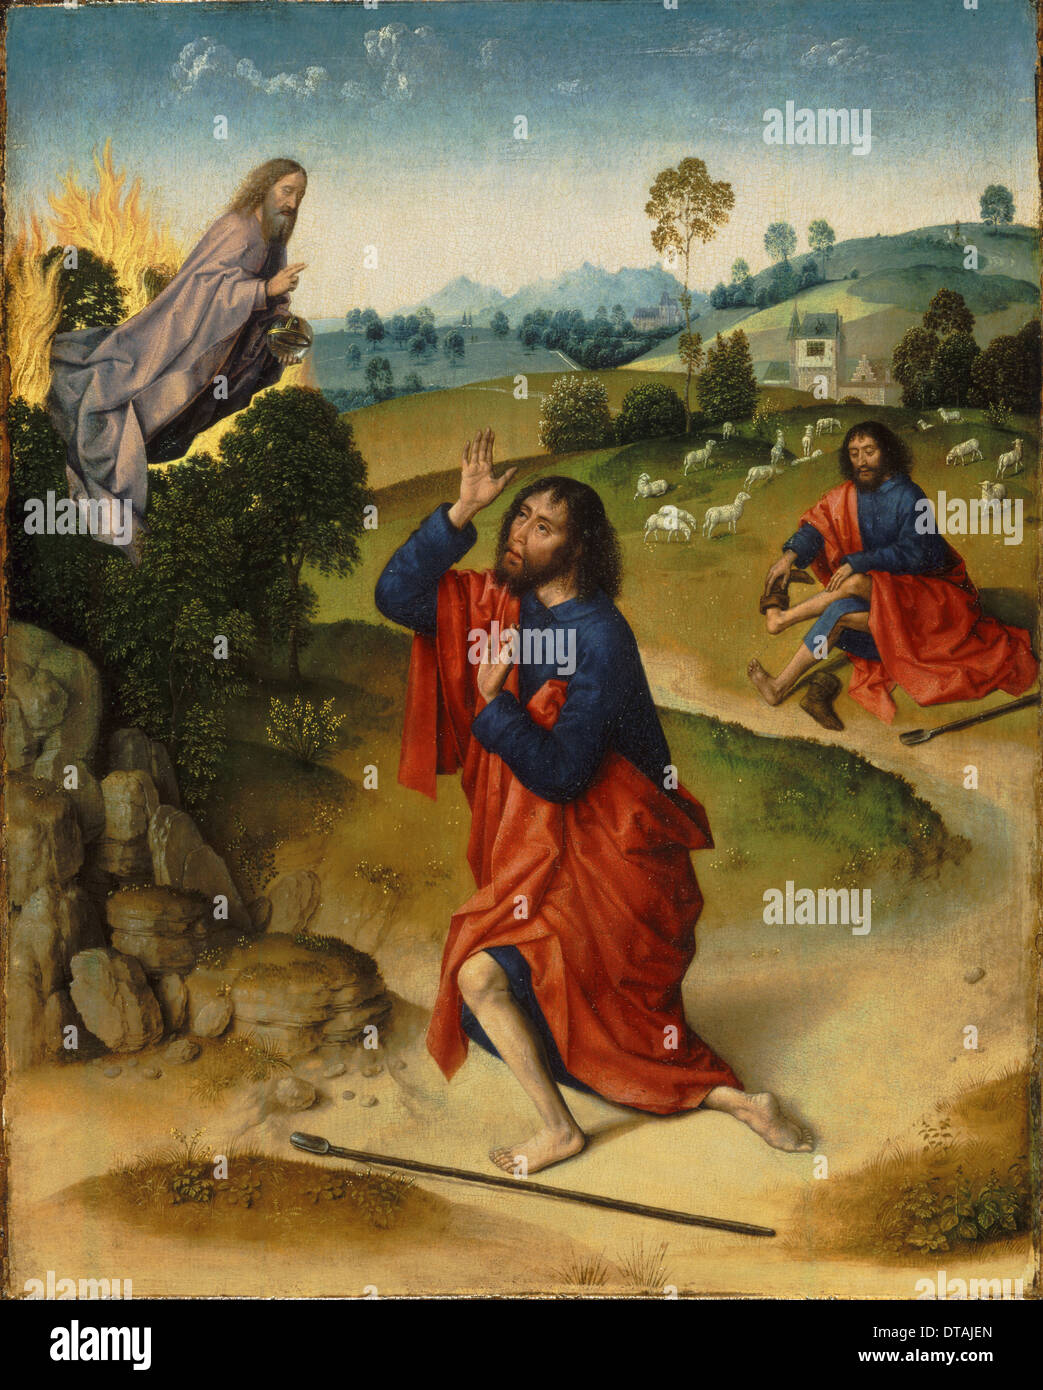 Moses and the Burning Bush, with Moses Removing His Shoes, ca 1465. Artist: Bouts, Dirk (1410/20-1475) - Stock Image